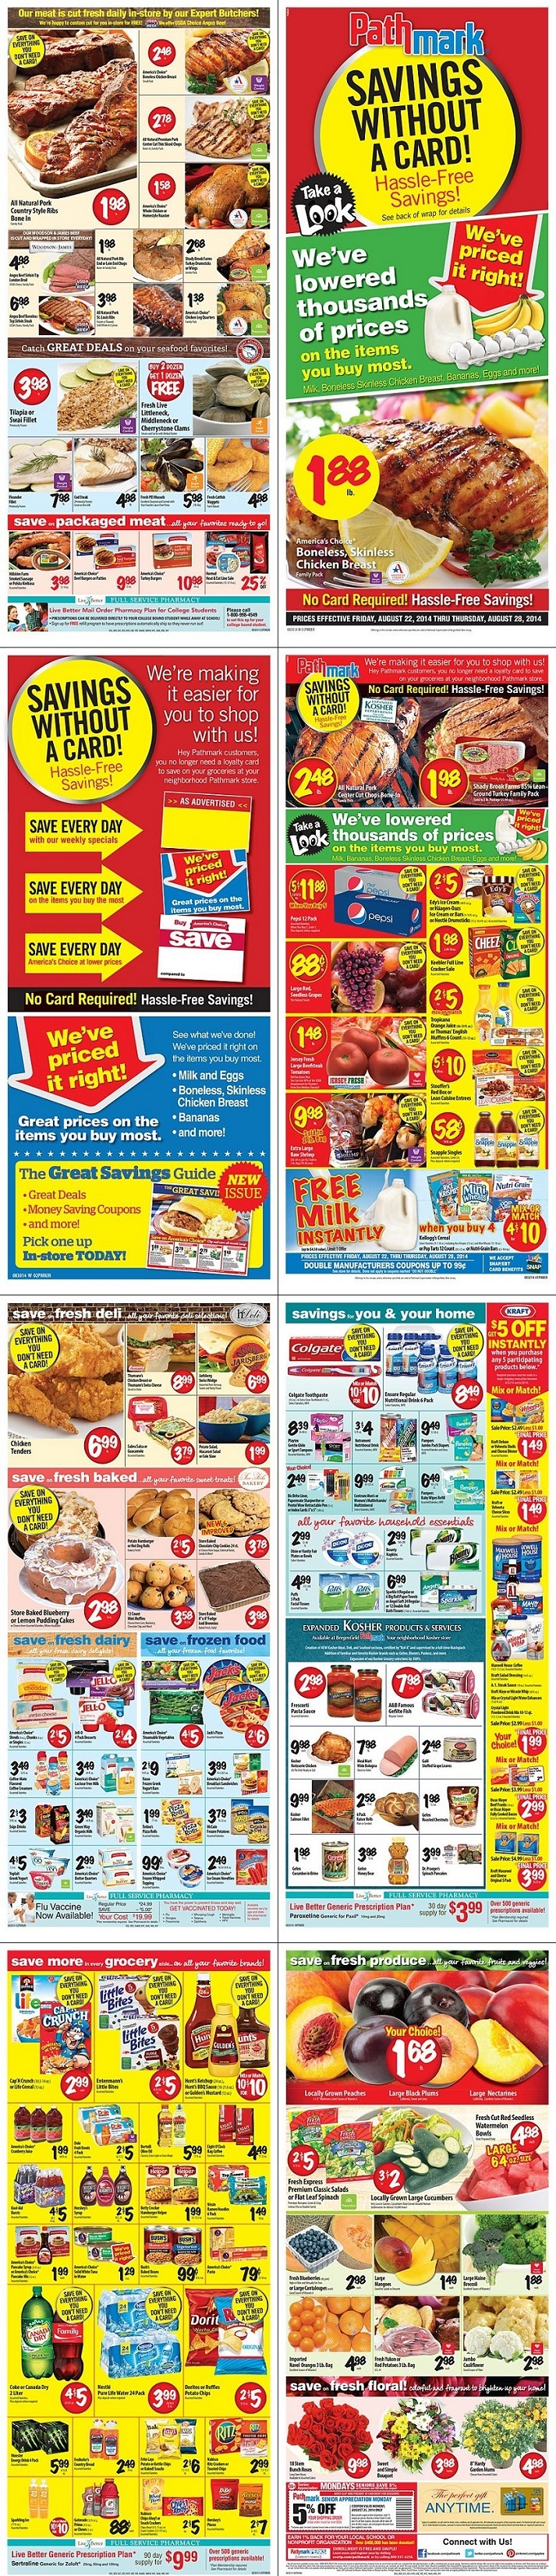 Where can you find the Pathmark weekly specials?